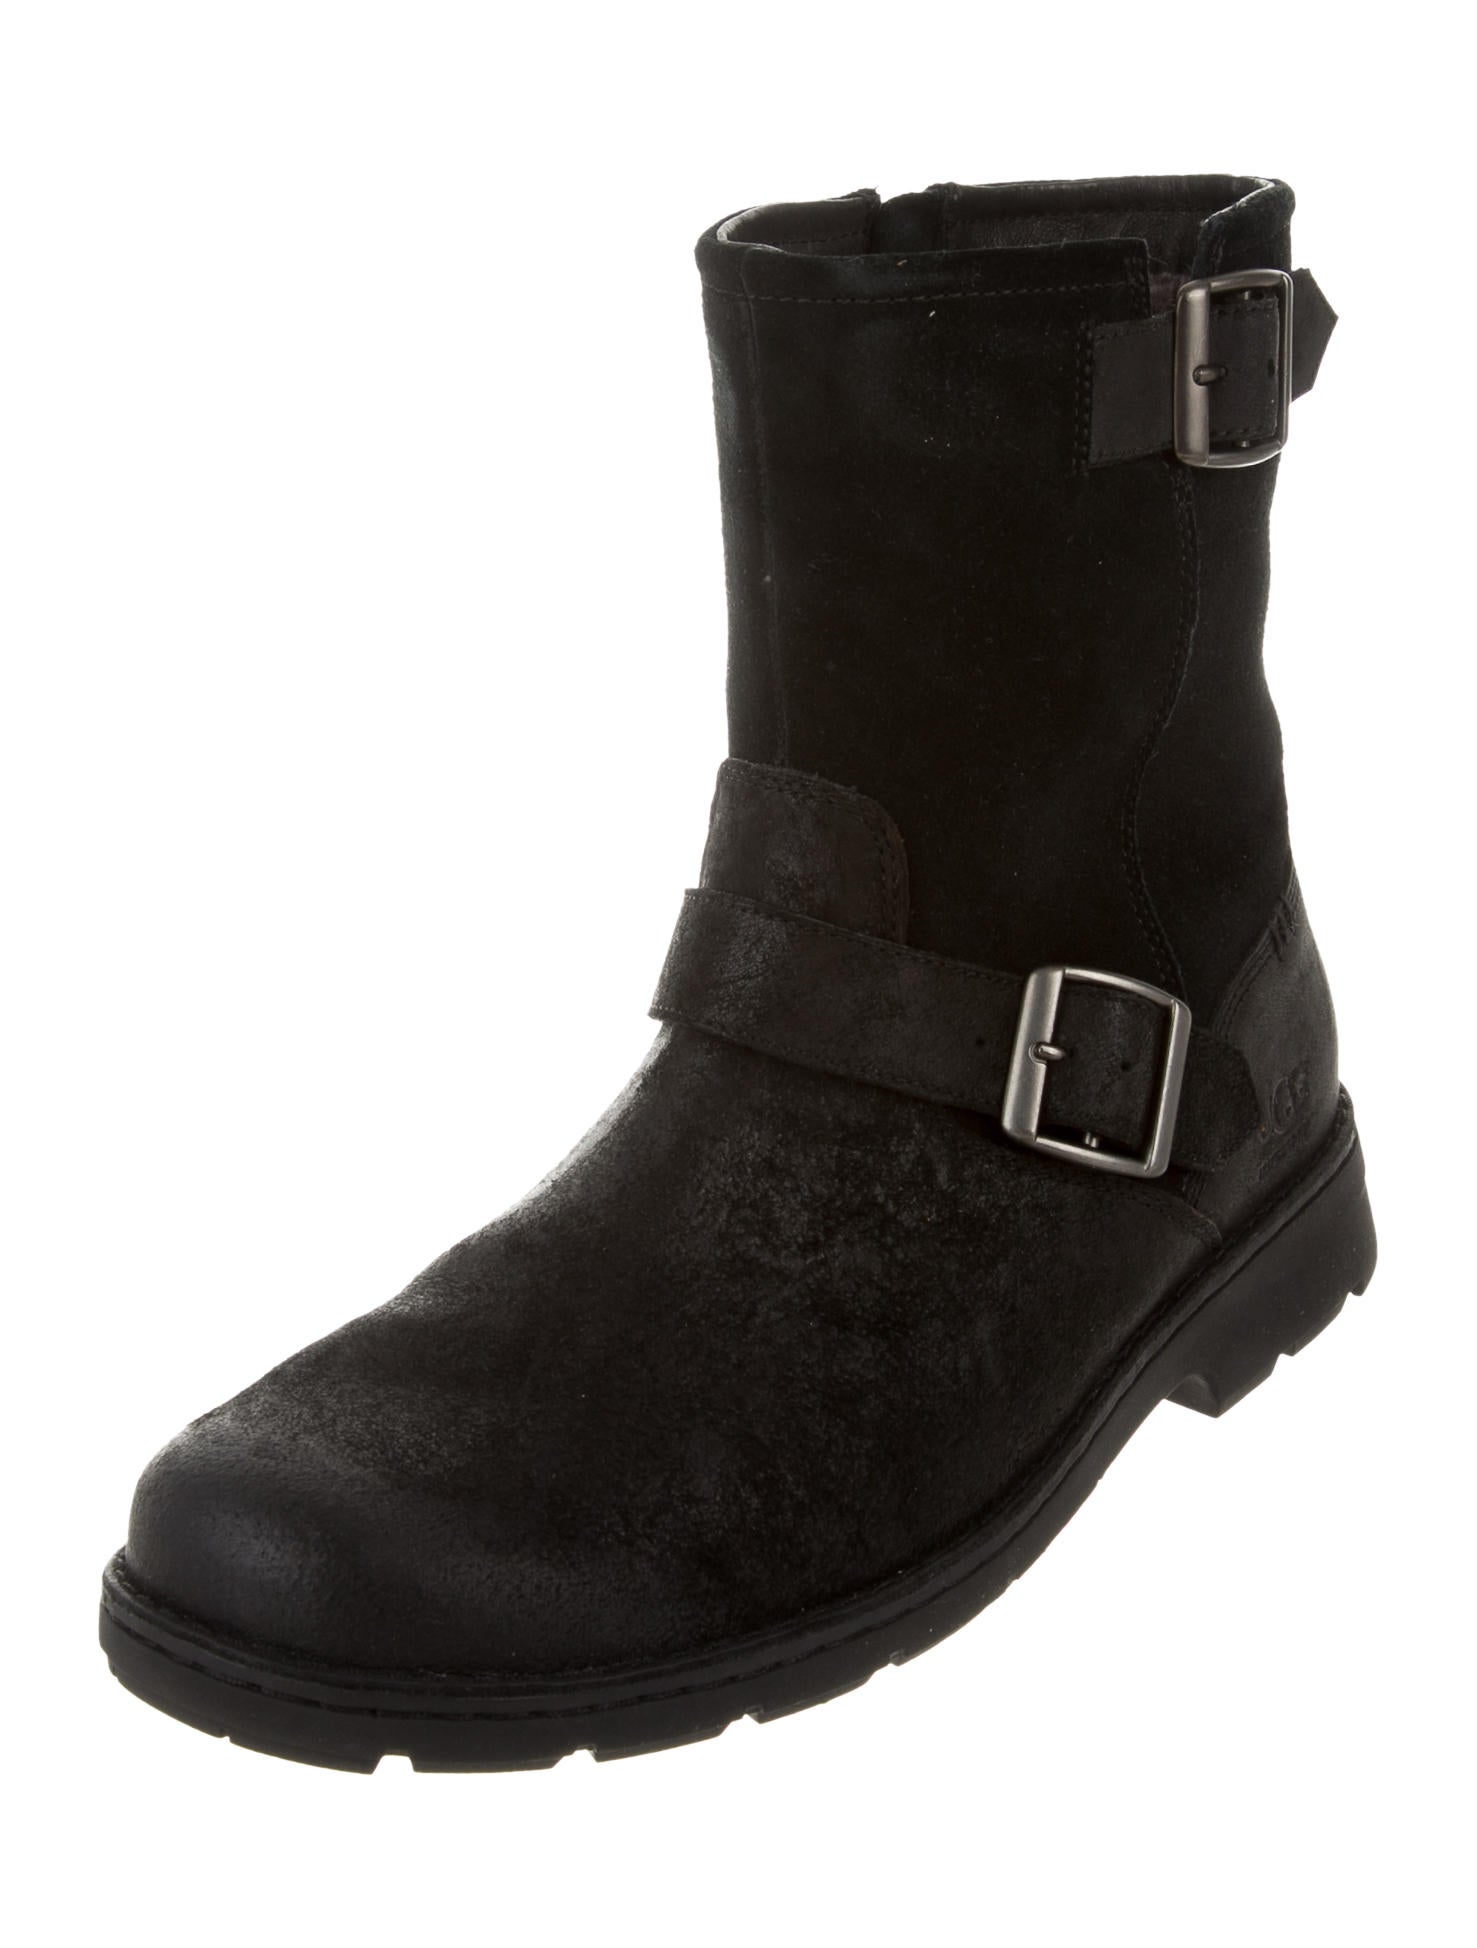 ugg australia shearling ankle boots shoes wuugg21365